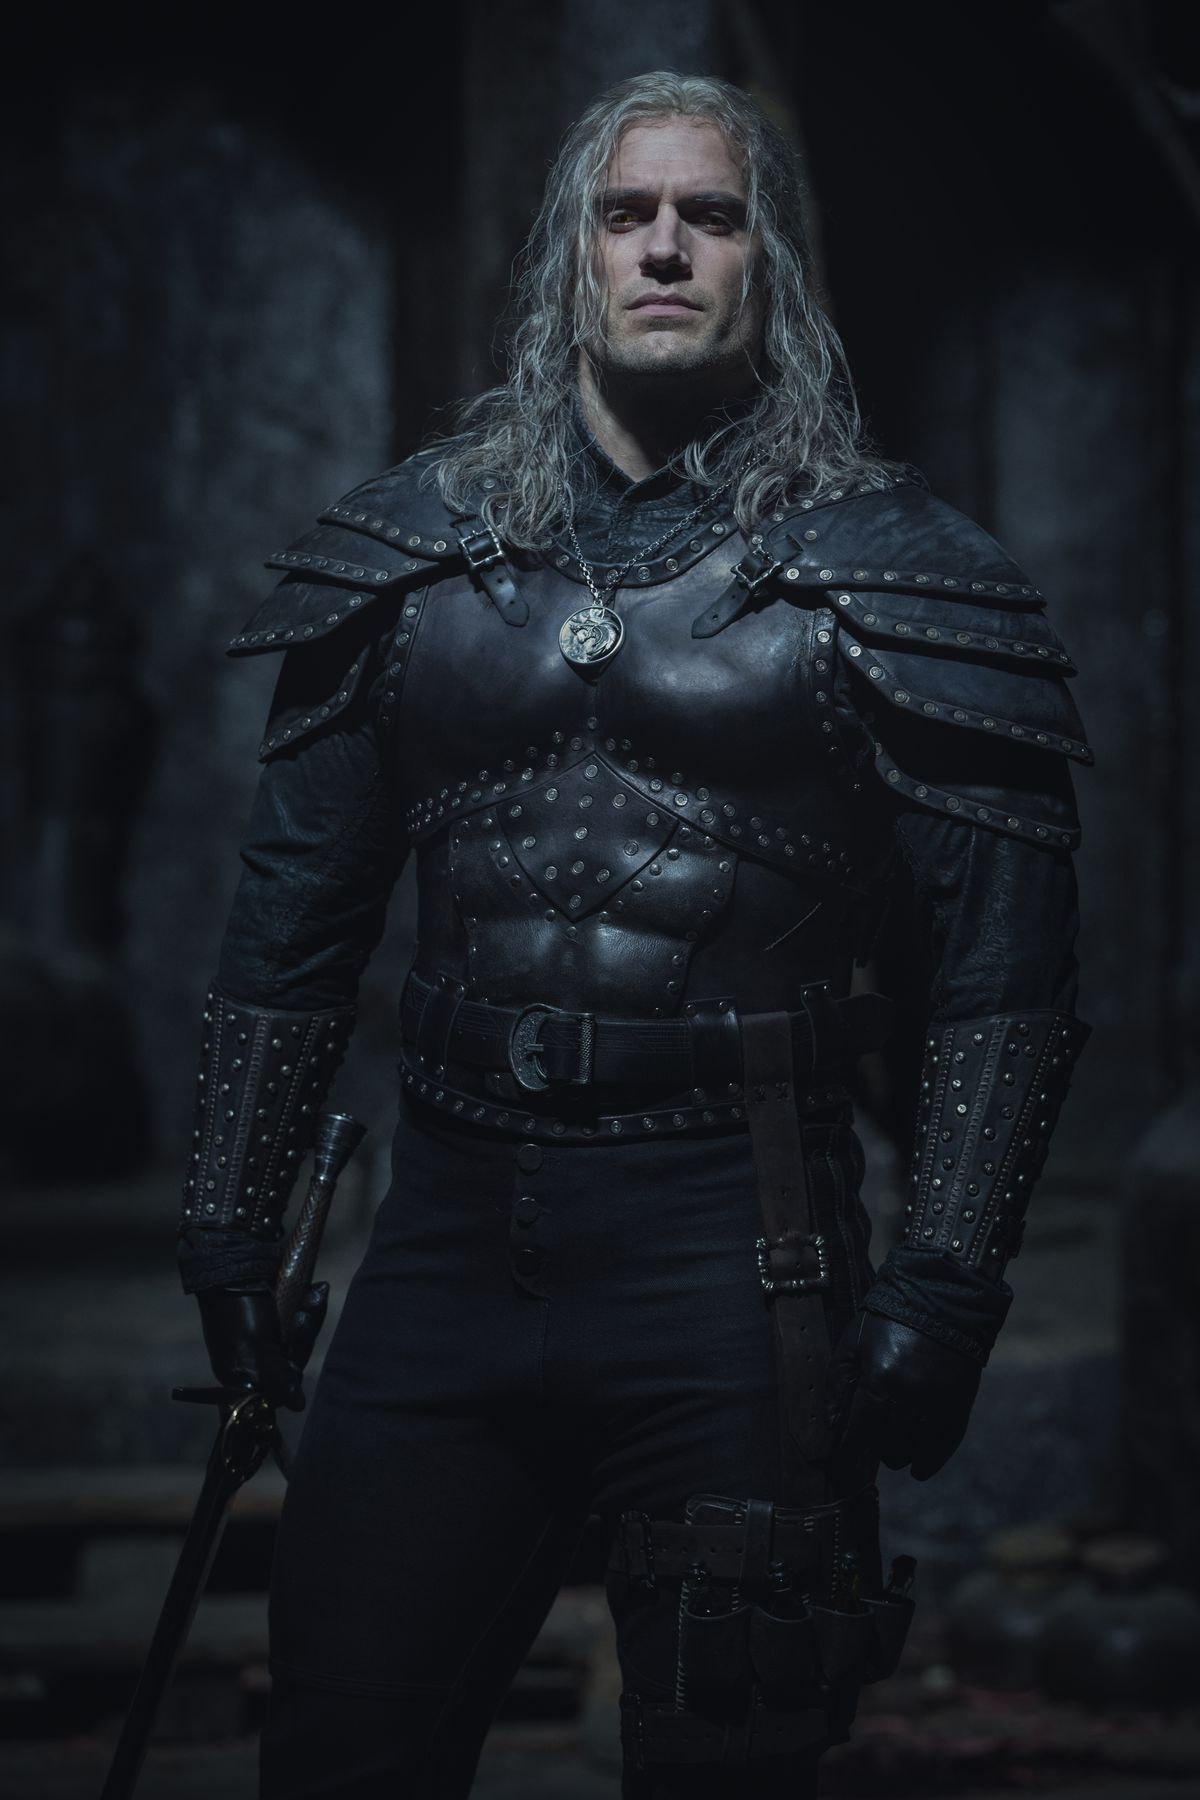 Cavill as Geralt in The Witcher season 2 armor